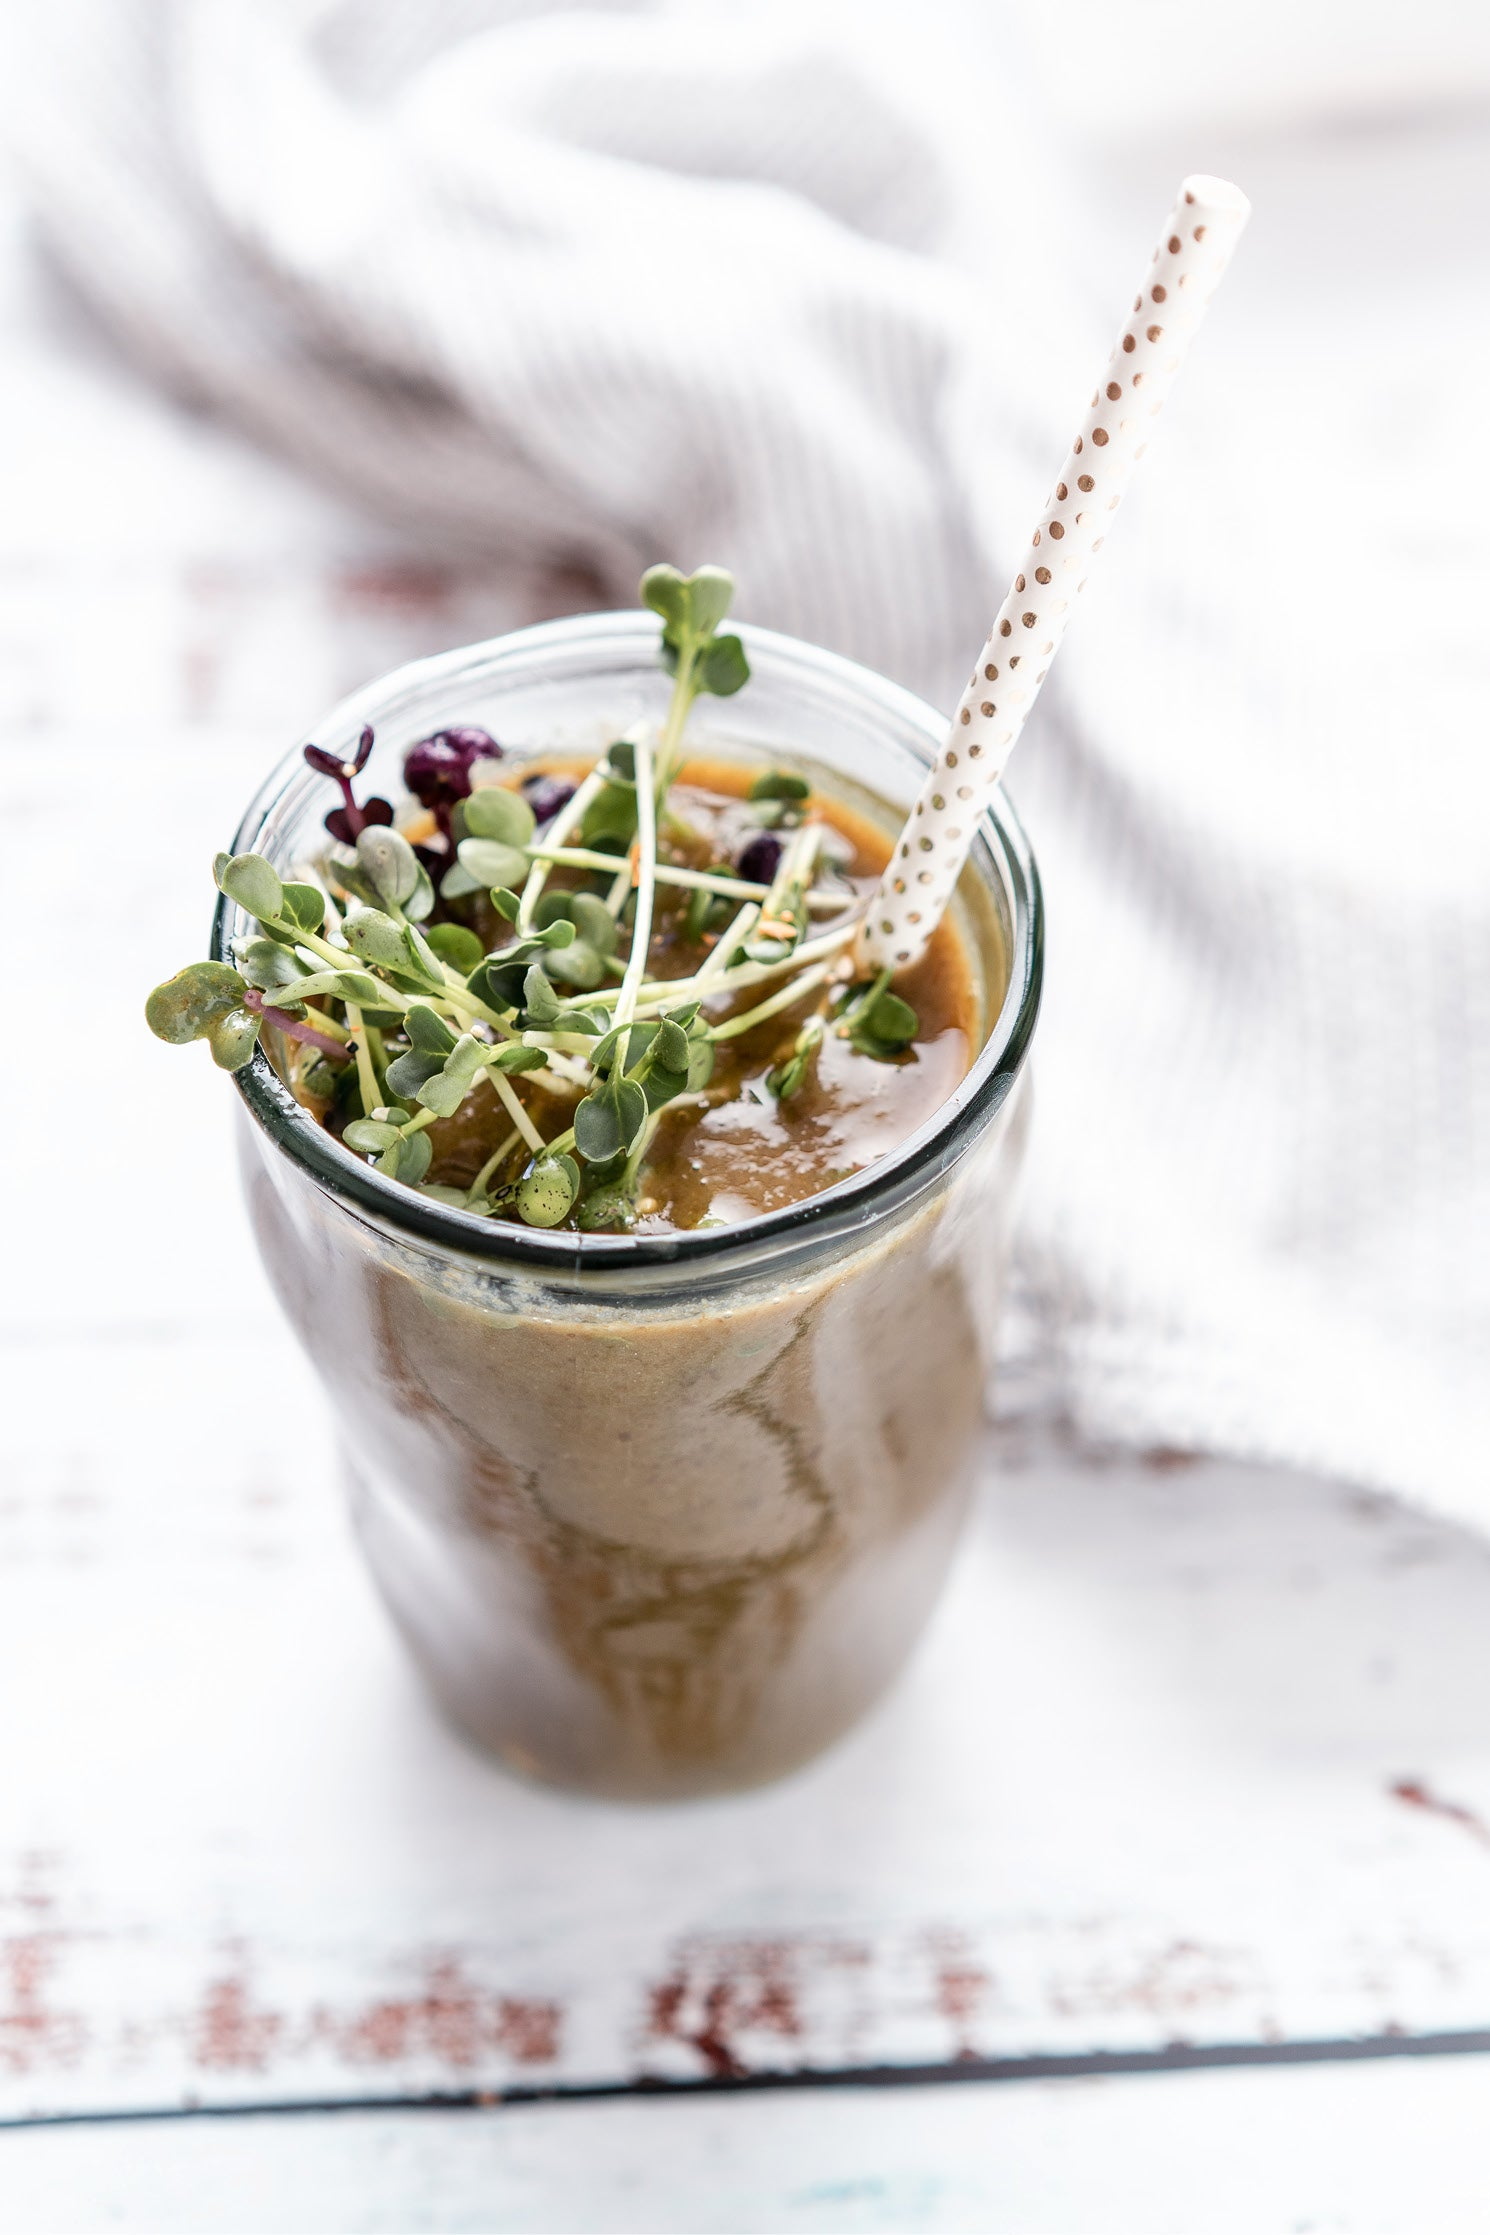 Green Smoothie - grüner Smoothie - mit Microgreens & Ingwer